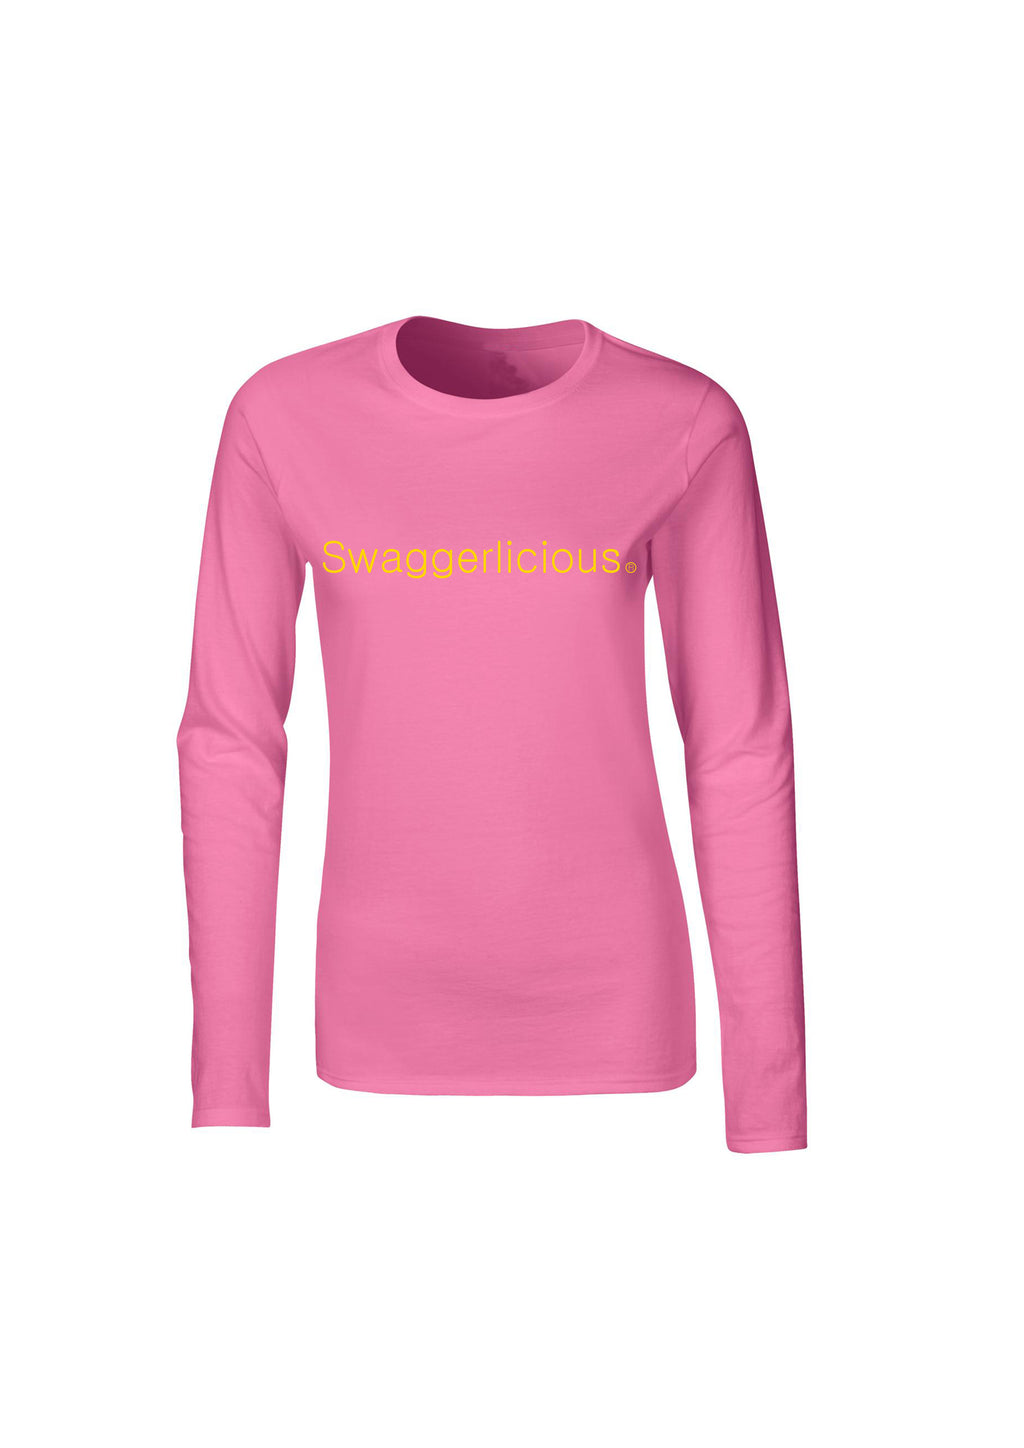 PINK SWAGGERLICIOUS LADIES LONG SLEEVE TOP - swaggerlicious-clothing.com